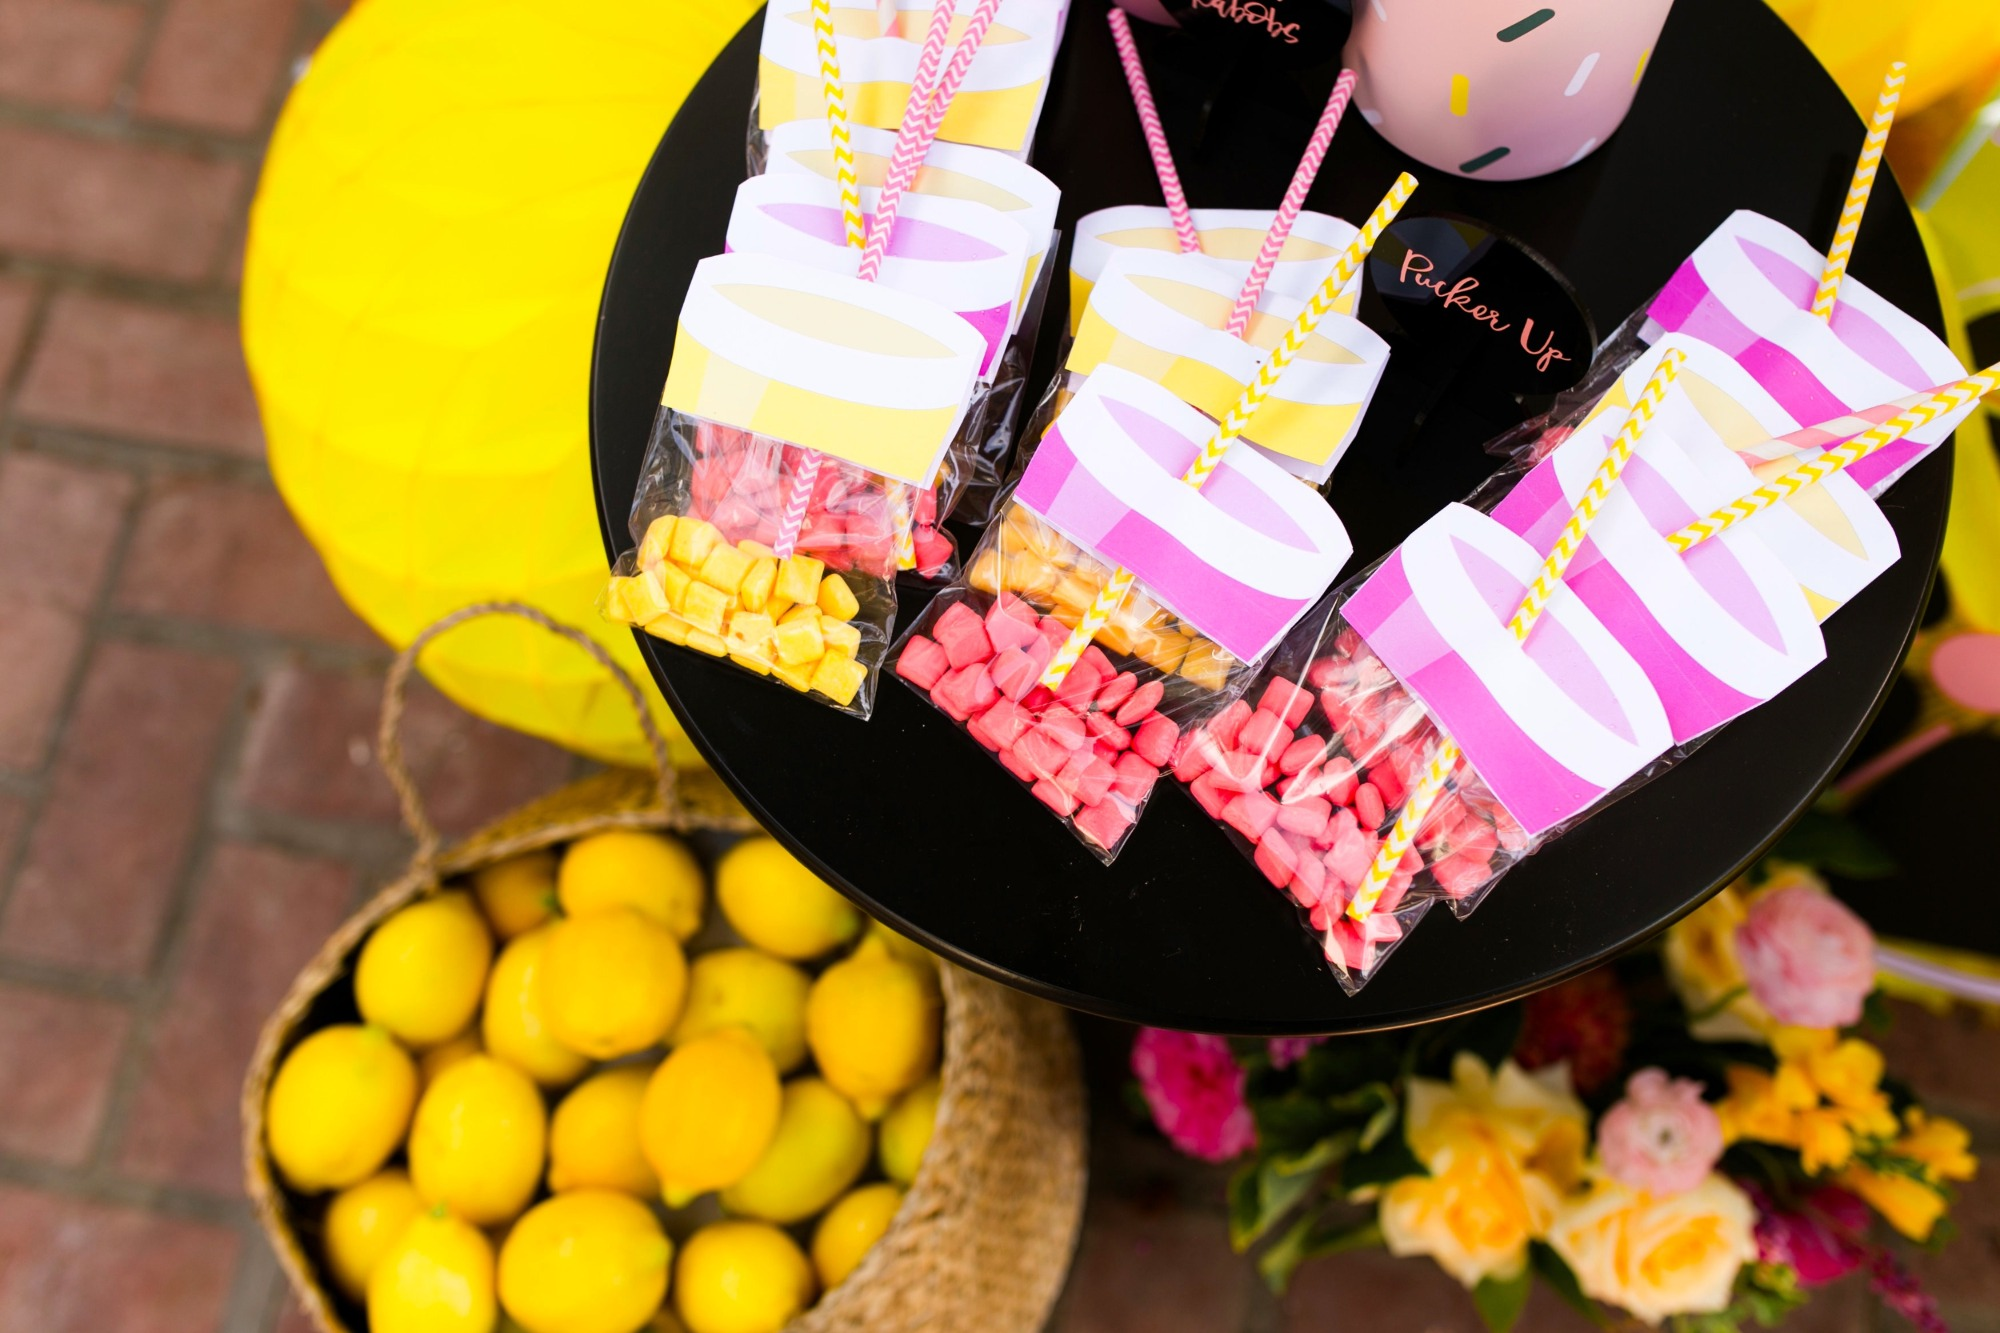 Lemonade candy party favors from Lemonade Stand Birthday Party by Forrest and J. | Black Twine